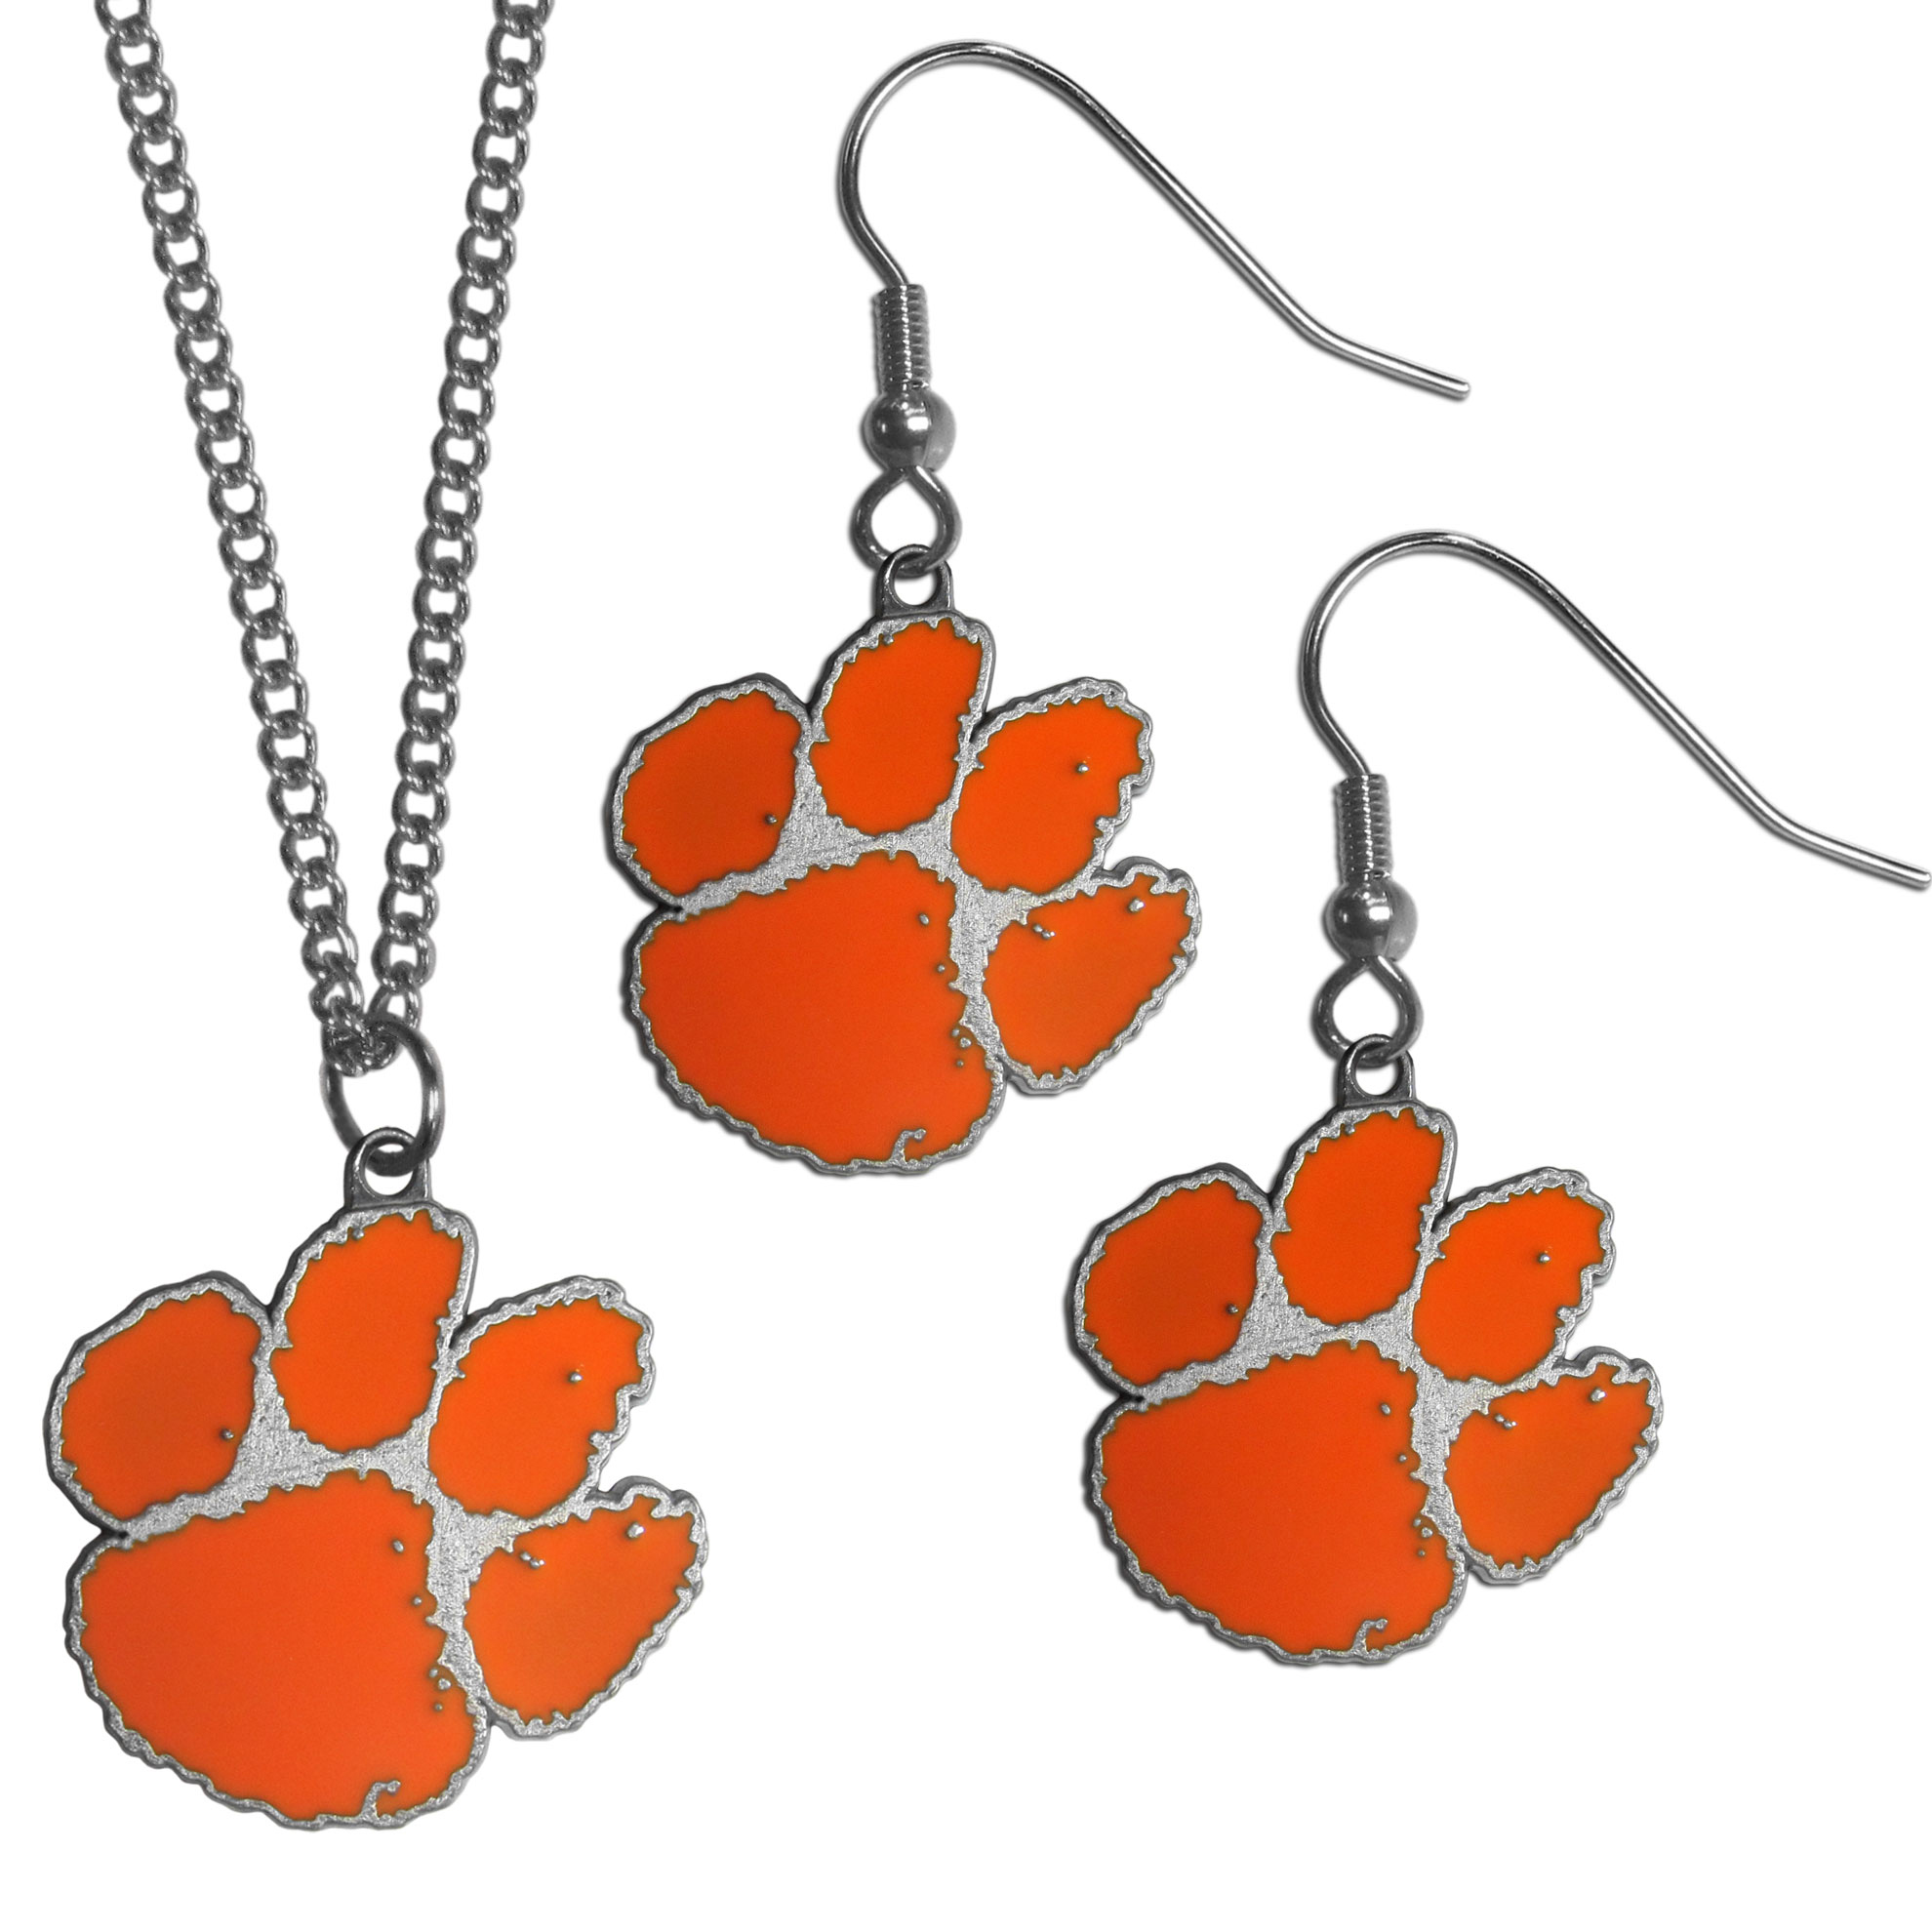 Clemson Tigers Dangle Earrings and Chain Necklace Set - This classic jewelry set contains are most popular Clemson Tigers dangle earrings and 22 inch chain necklace. The trendy, dangle earrings are lightweight and feature a fully cast metal team charm with enameled team colors. The matching necklace completes this fashion forward combo and is a spirited set that is perfect for game day but nice enough for everyday.